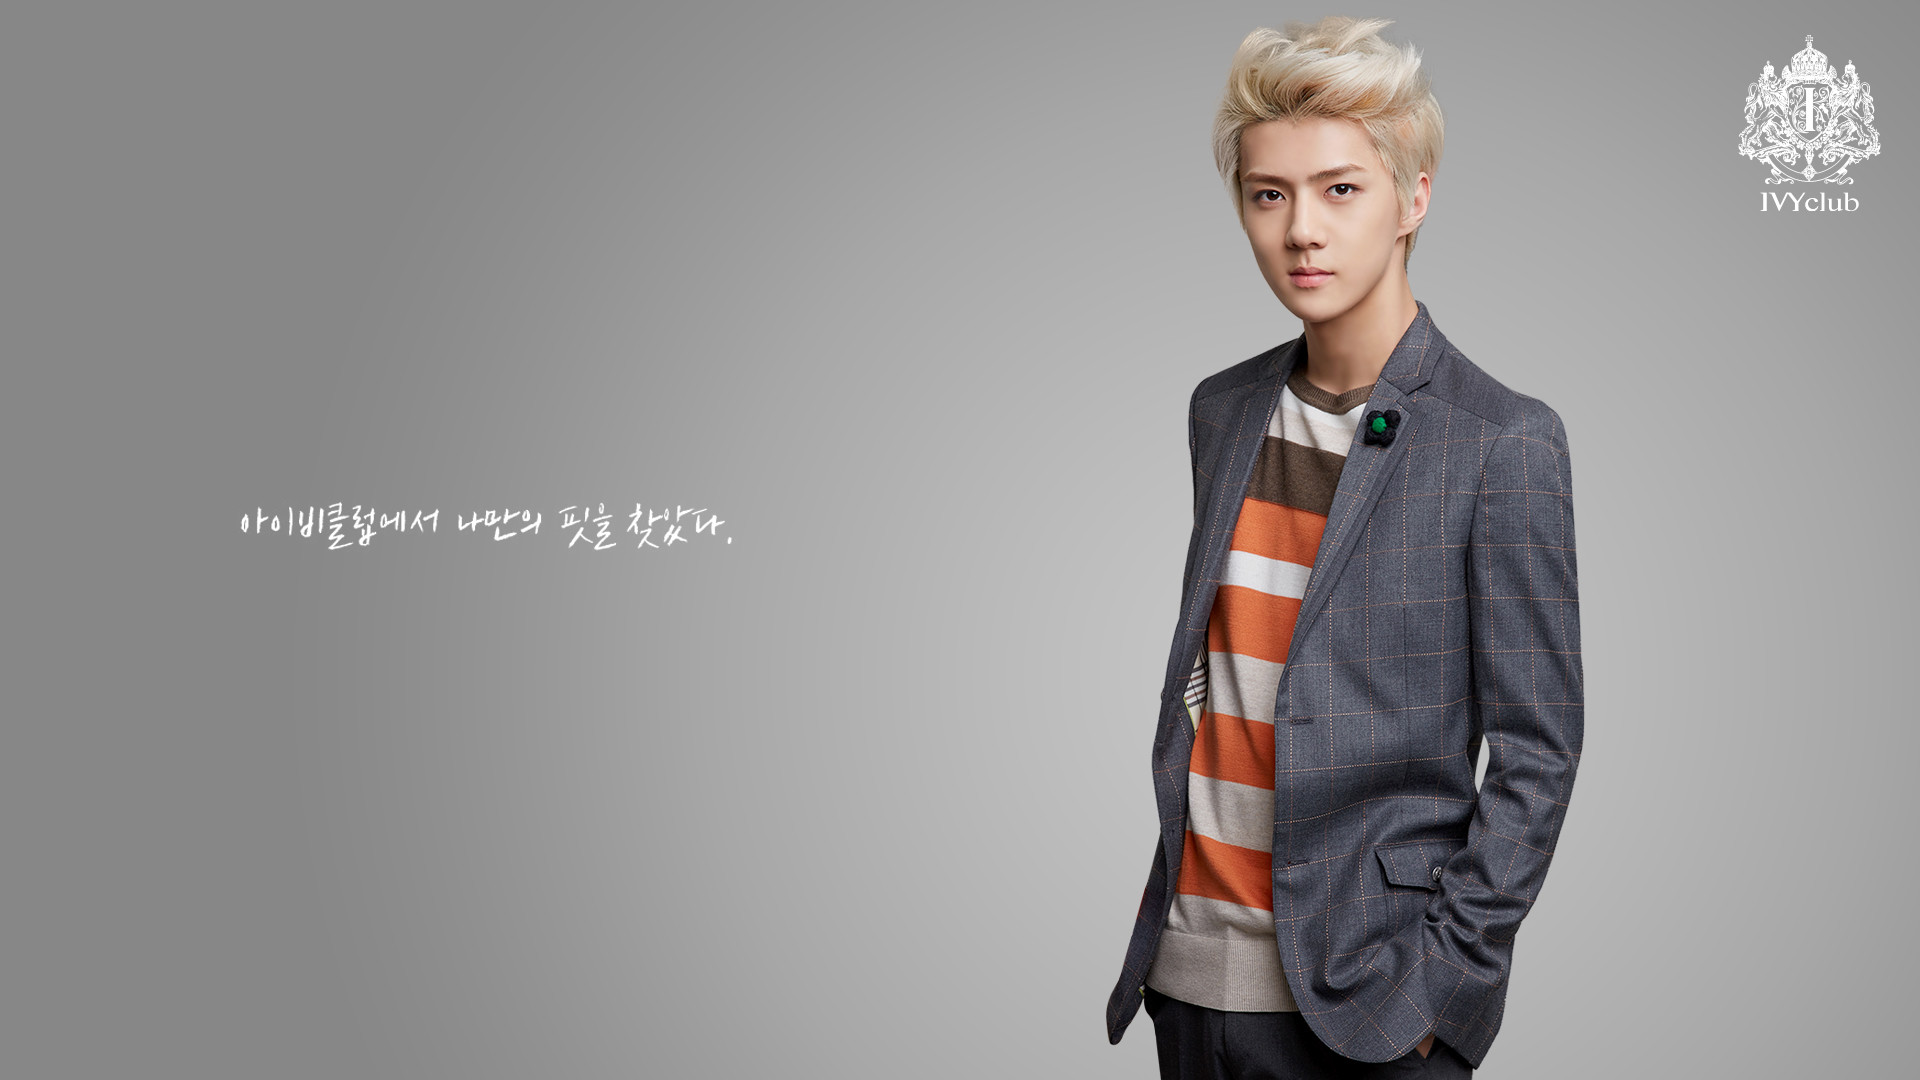 1920x1080 EXO-K images Sehun HD wallpaper and background photos